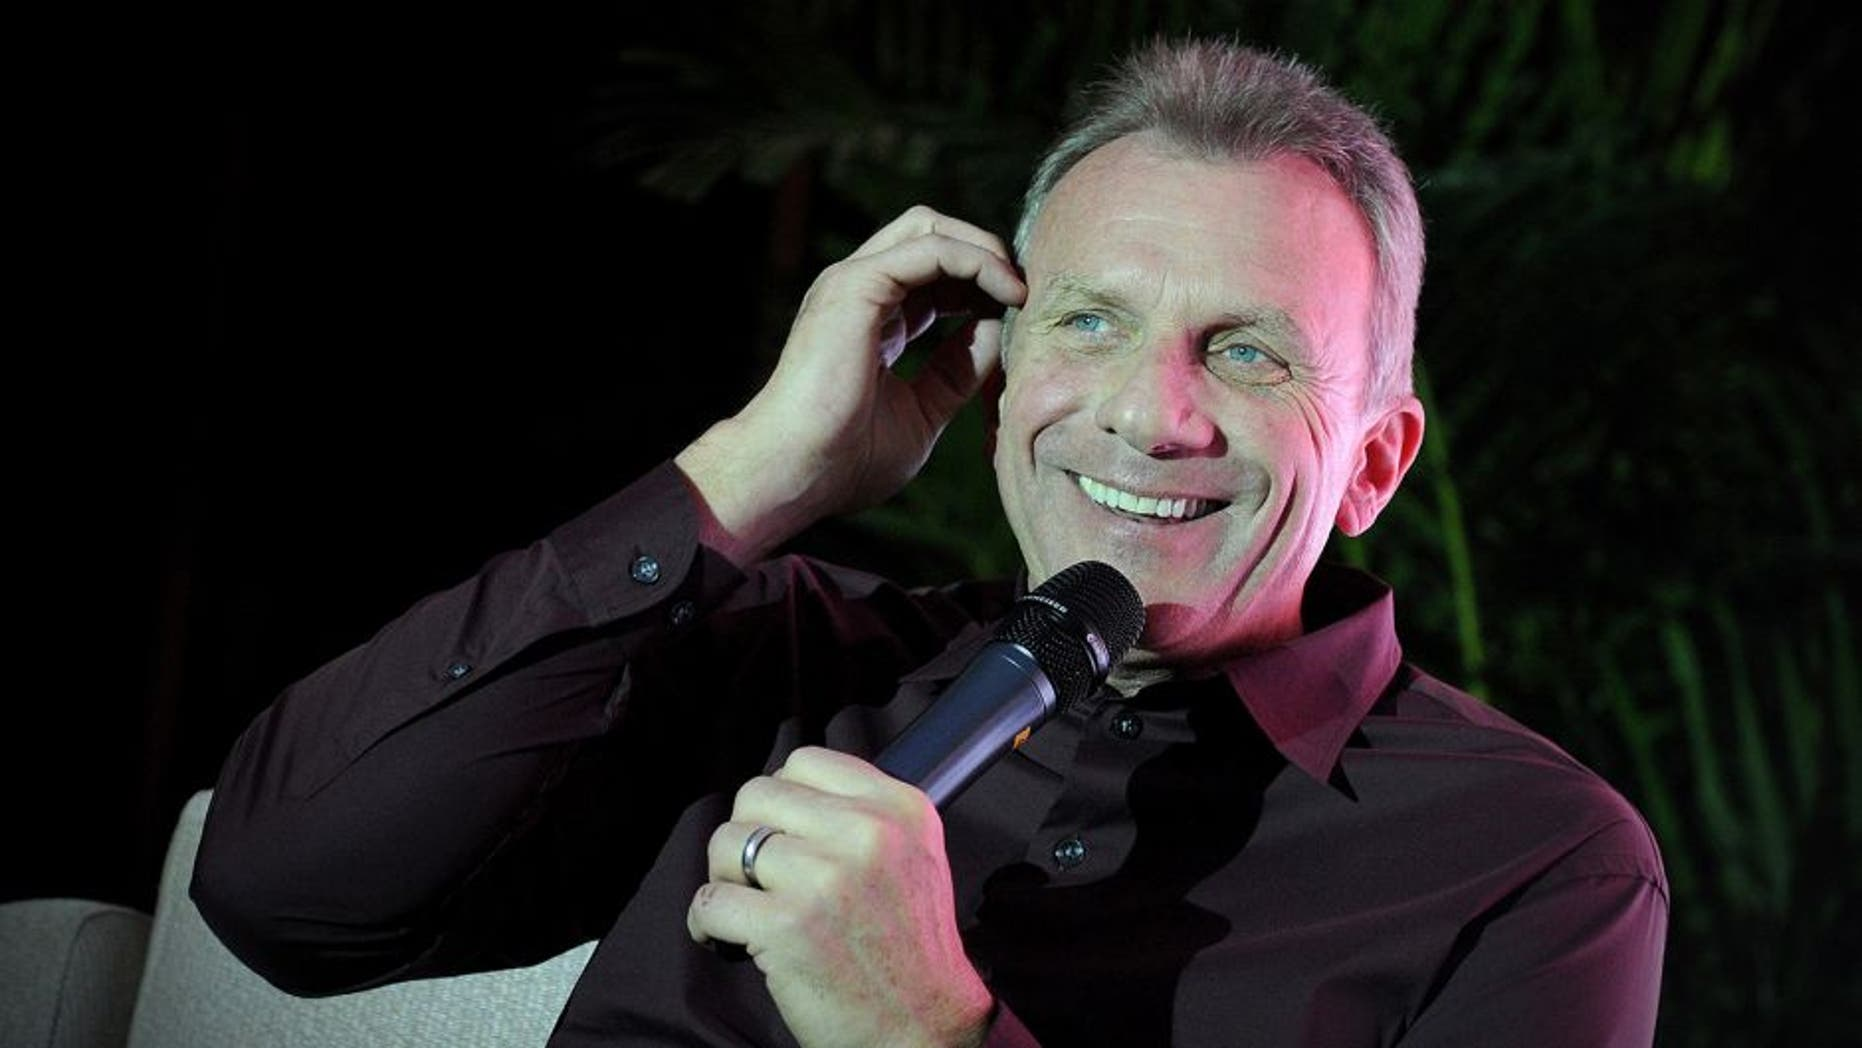 US National Football League (NFL) former quarterback Joe Montana speaks at a conference in Beijing on November 18, 2013. Joe Montana is on a visit to China from November13 to 19. AFP PHOTO / WANG ZHAO (Photo credit should read WANG ZHAO/AFP/Getty Images)